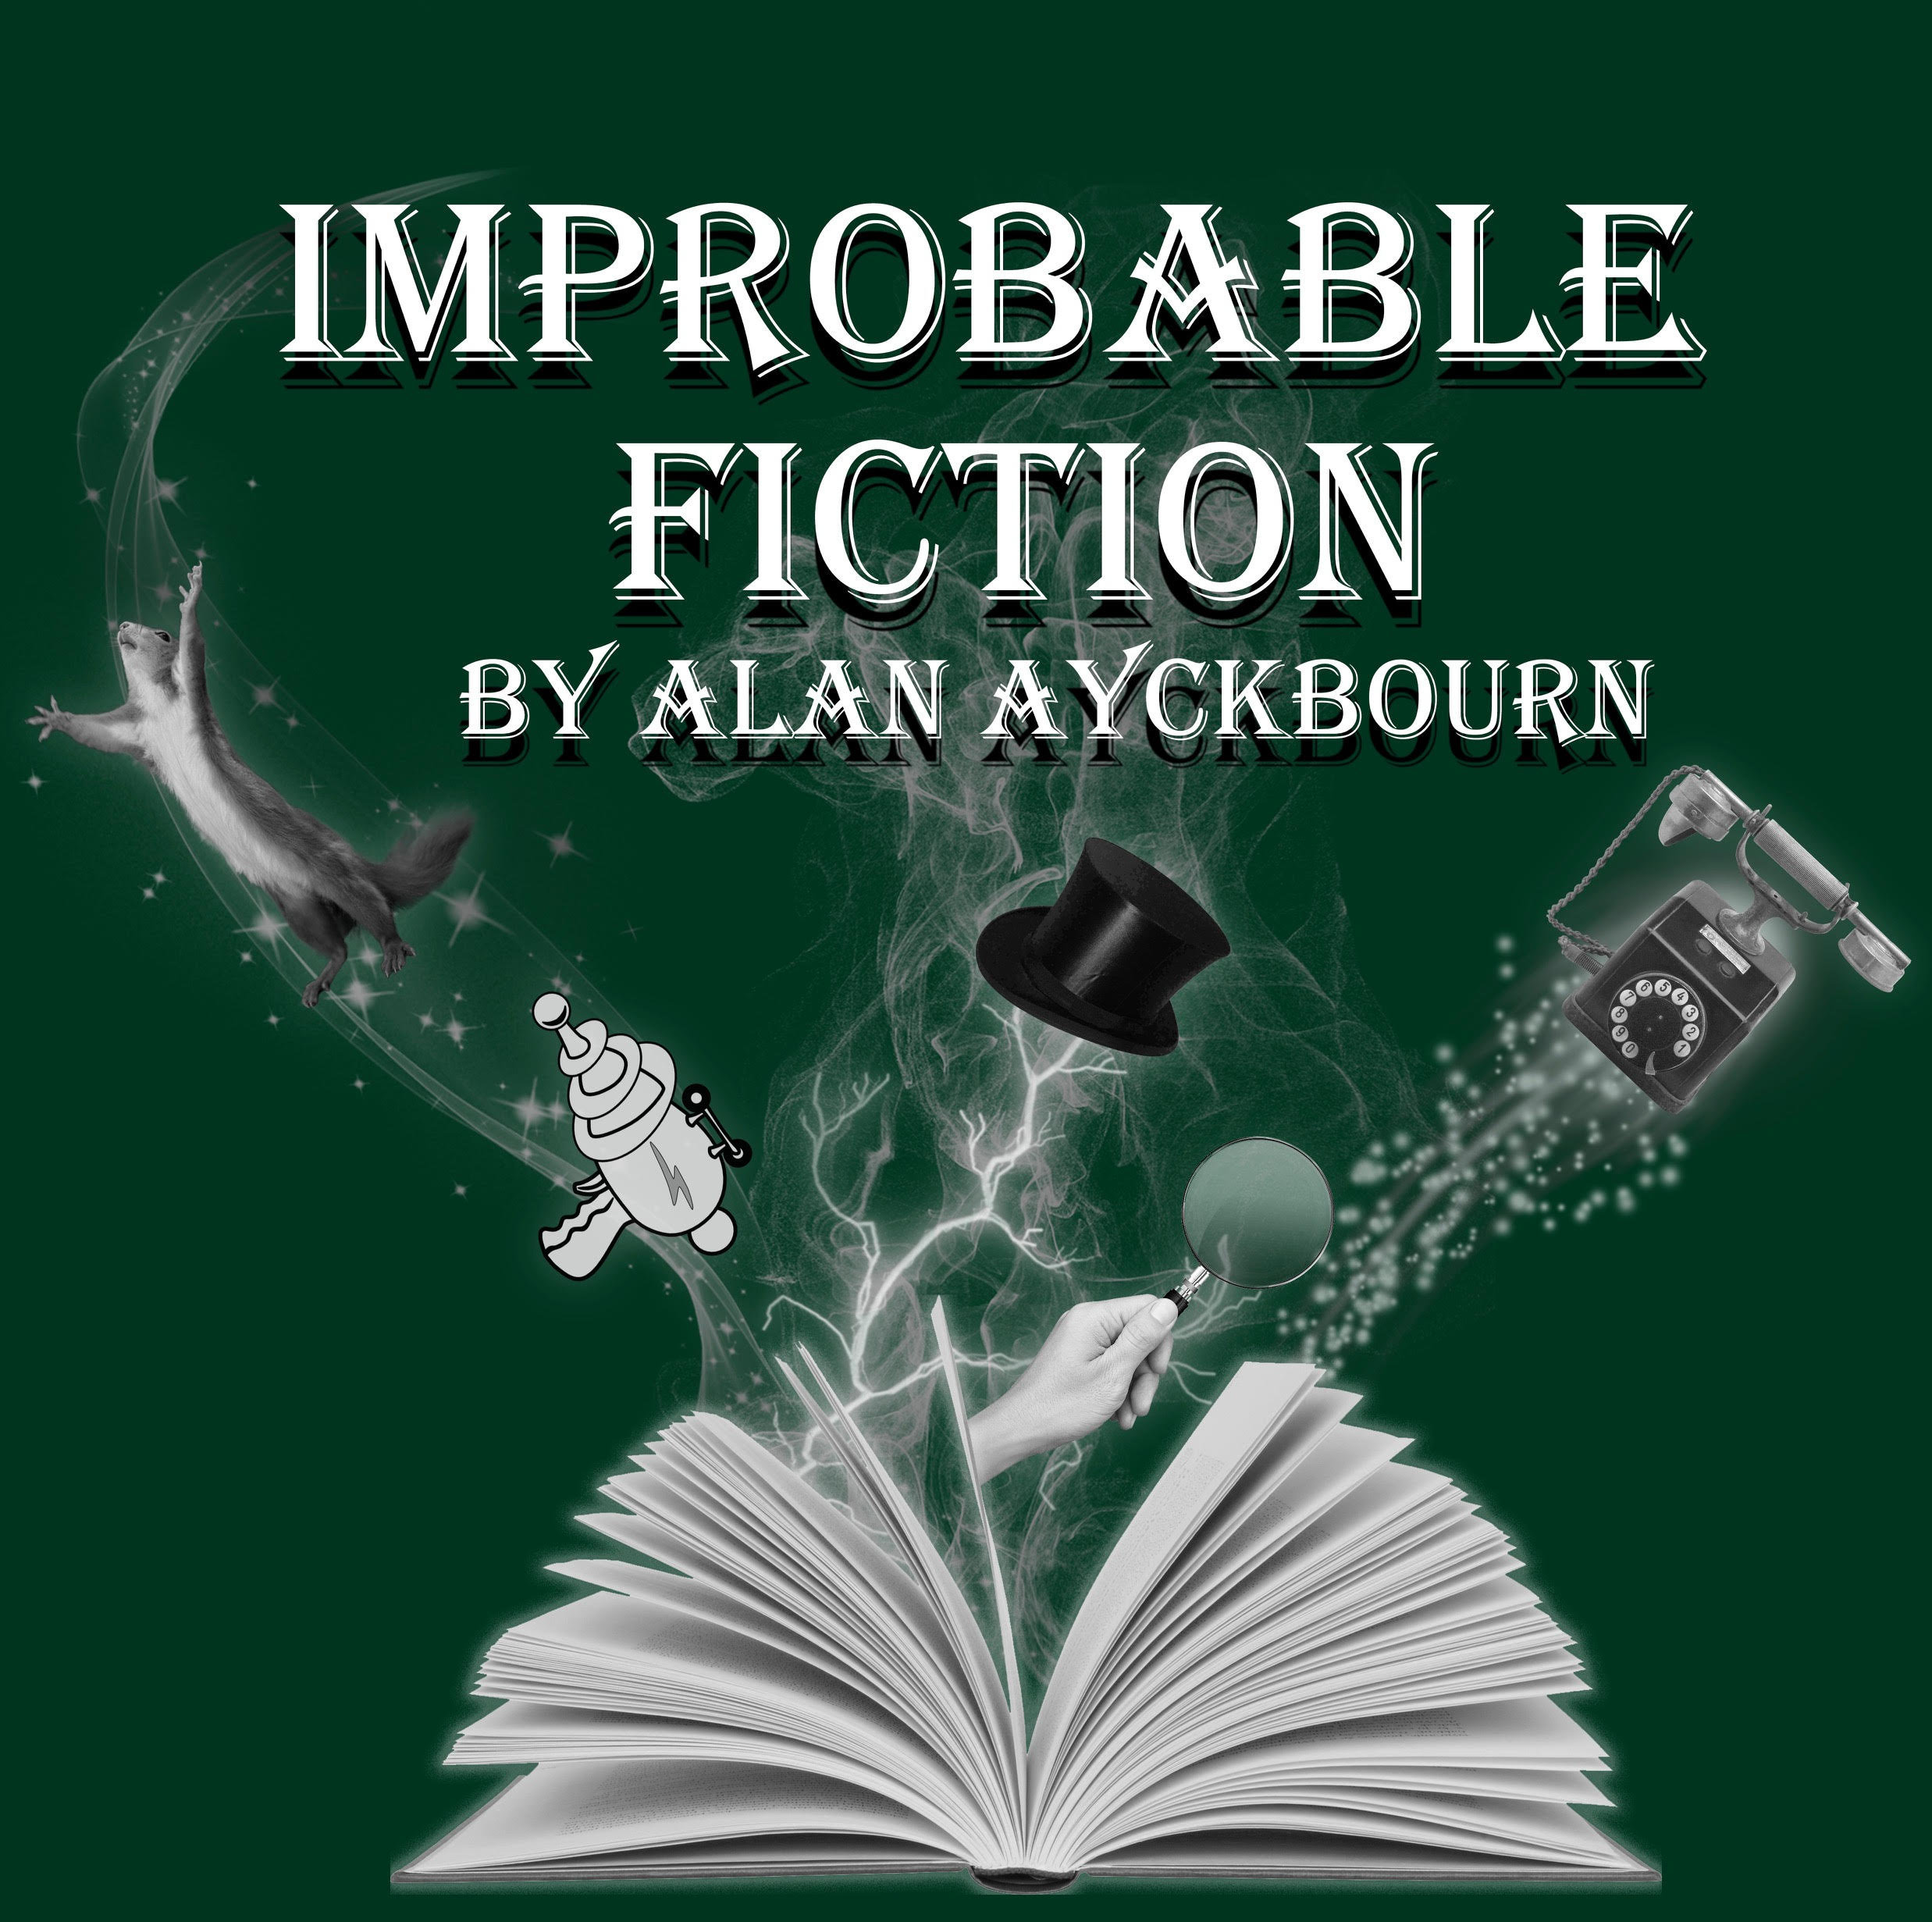 Improbable Fiction in Cockermouth